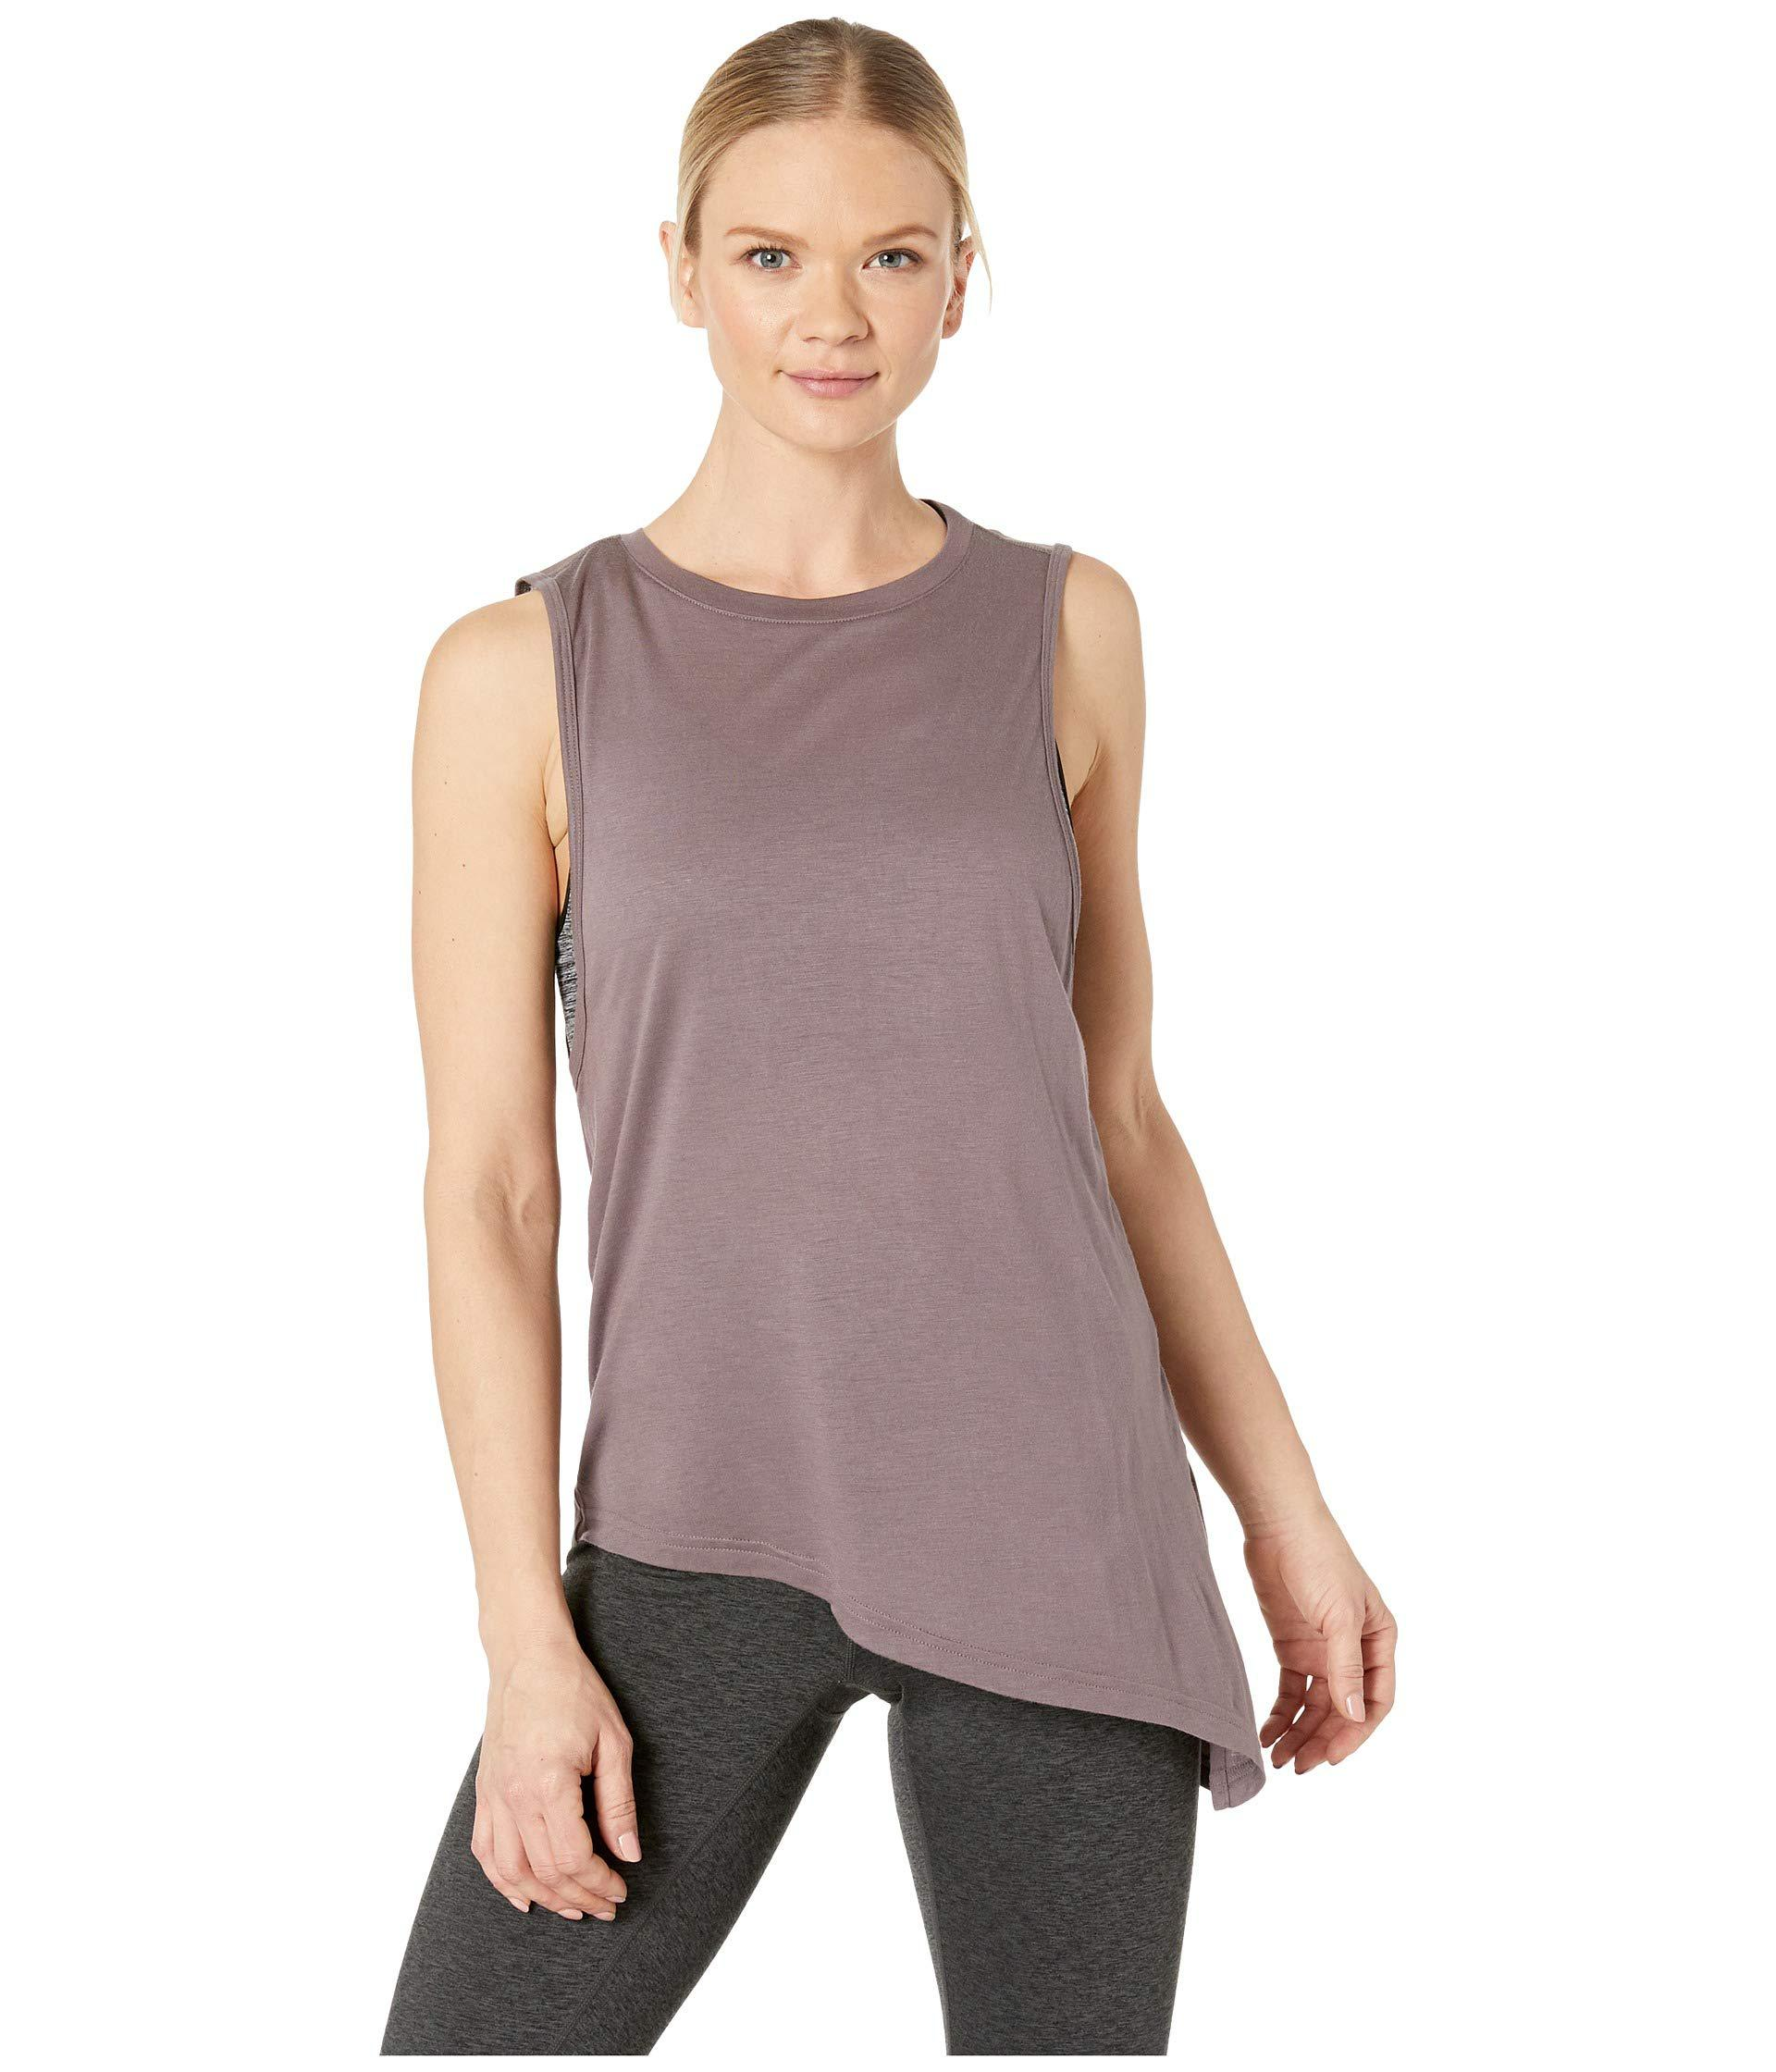 66f332889a81dd Lyst - Reebok Training Supply Muscle Tank Top in Gray